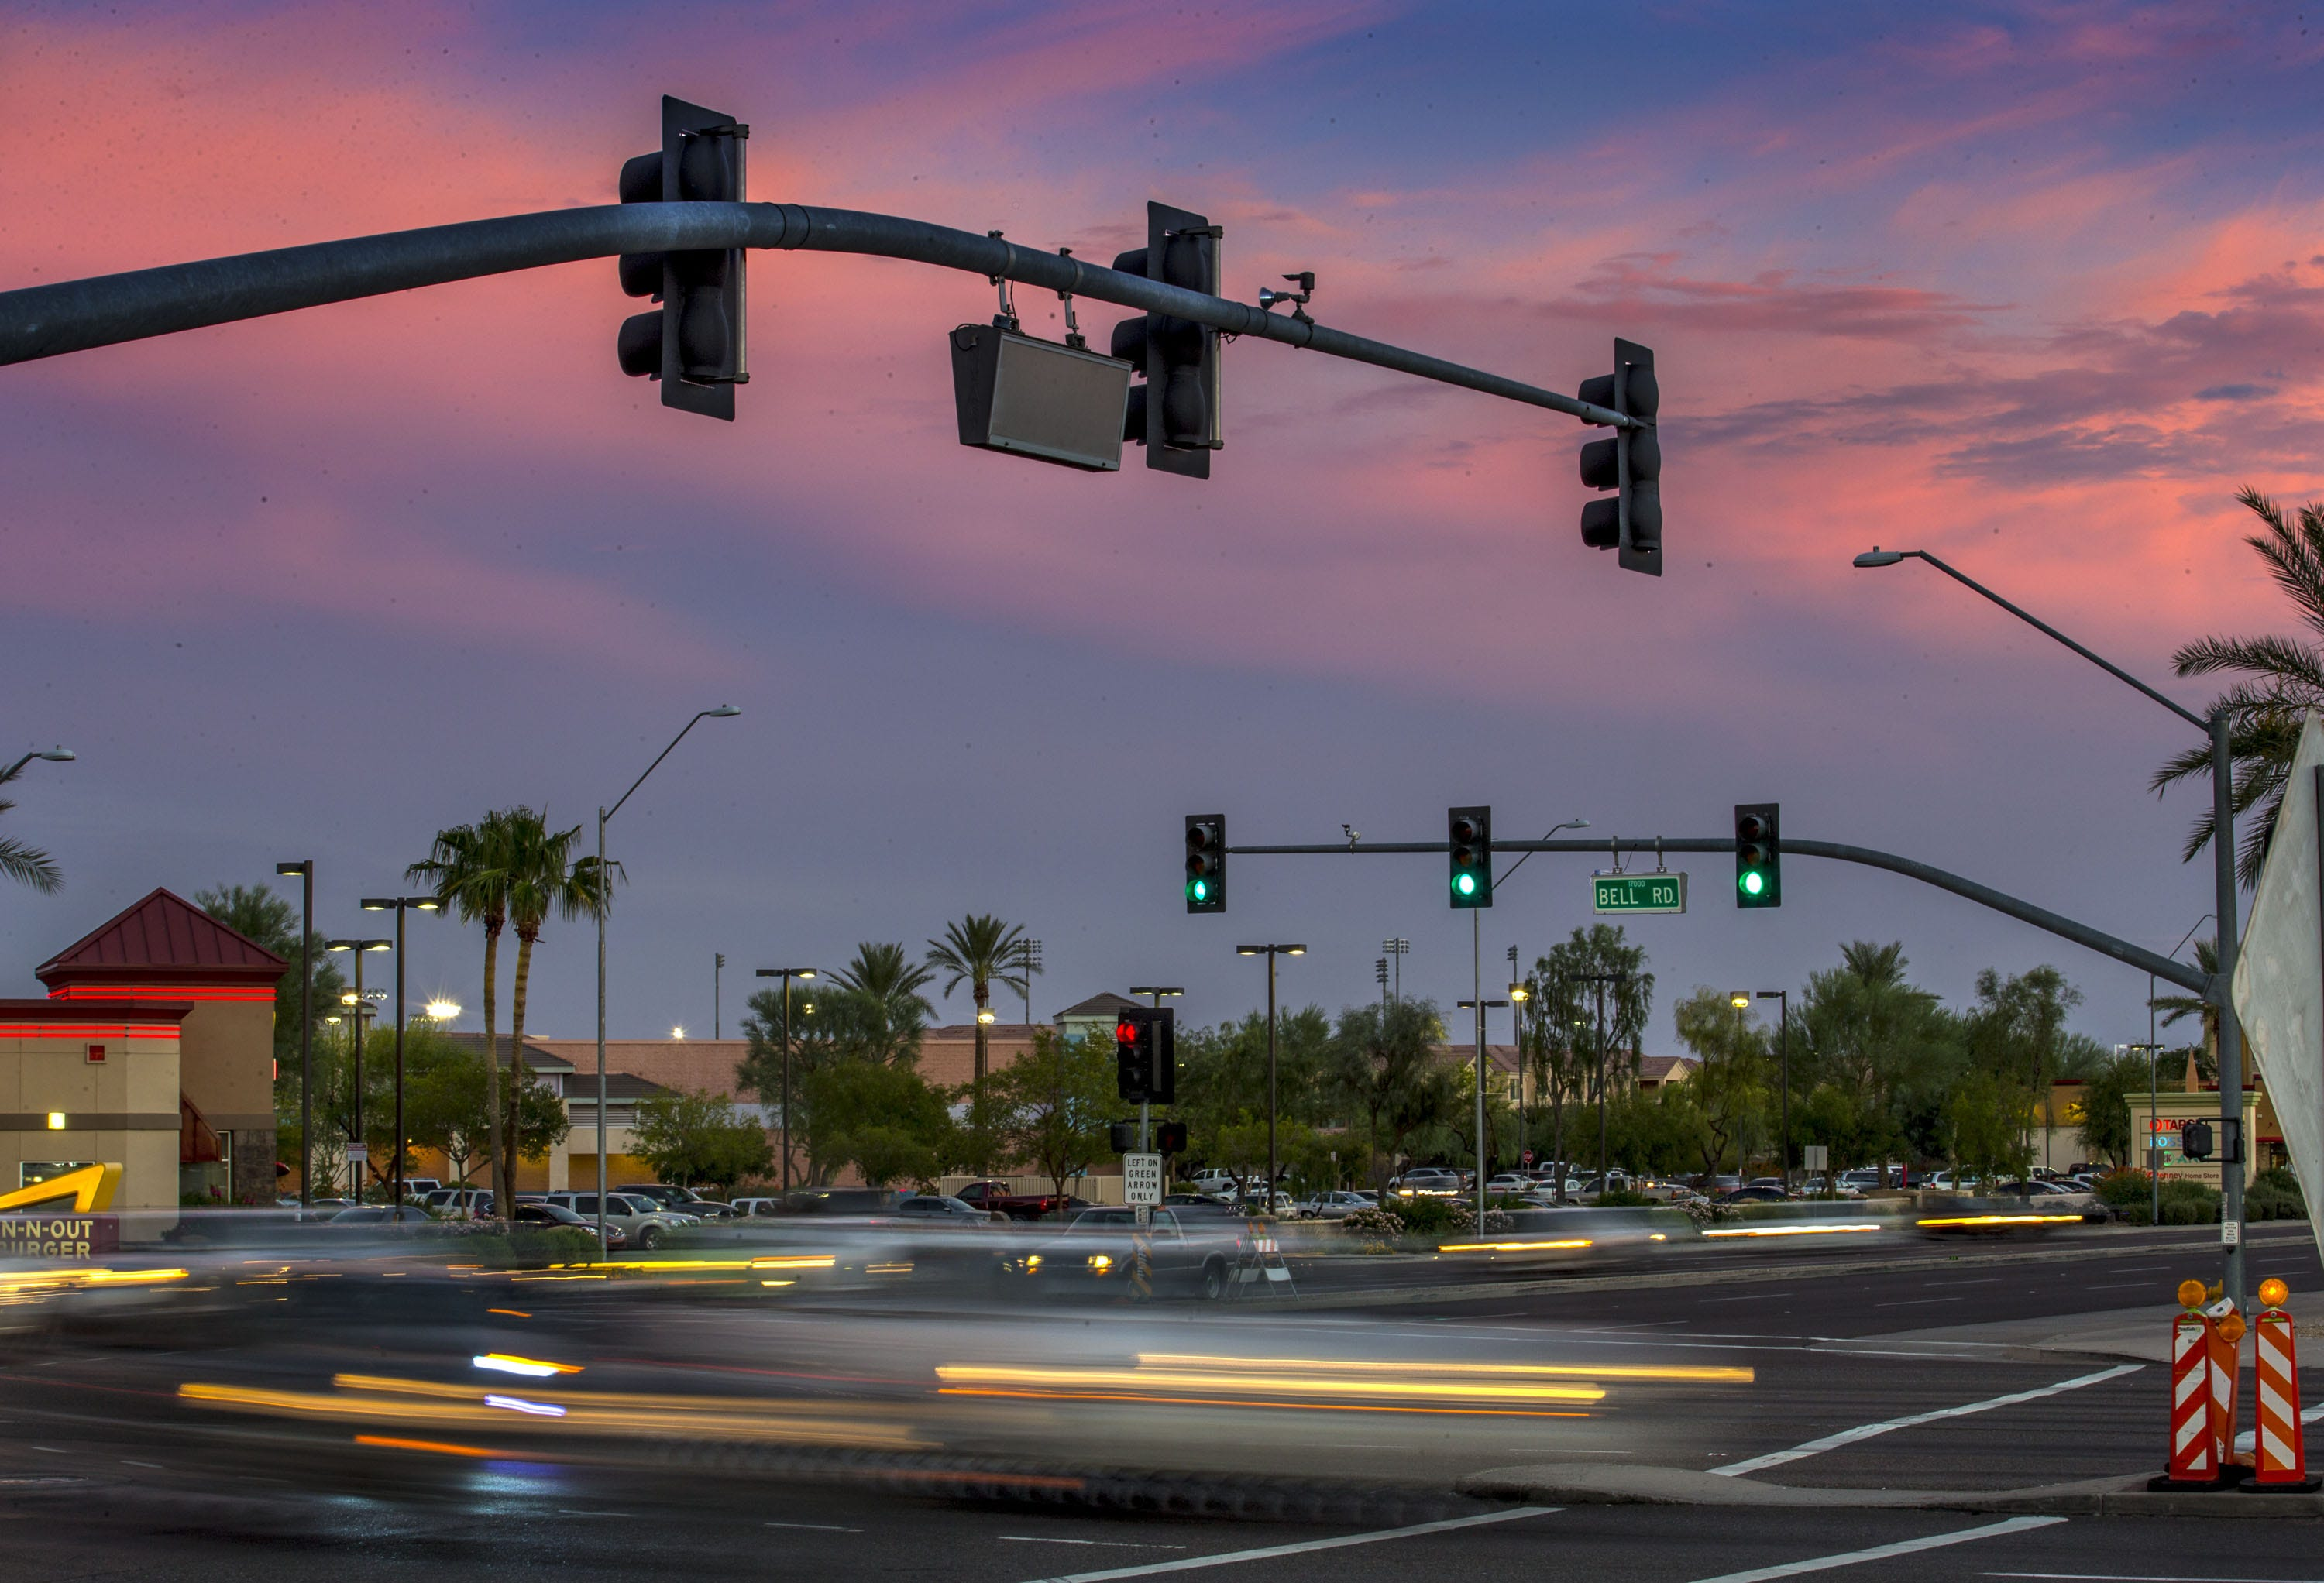 Glendale police release list of top 10 most dangerous intersections